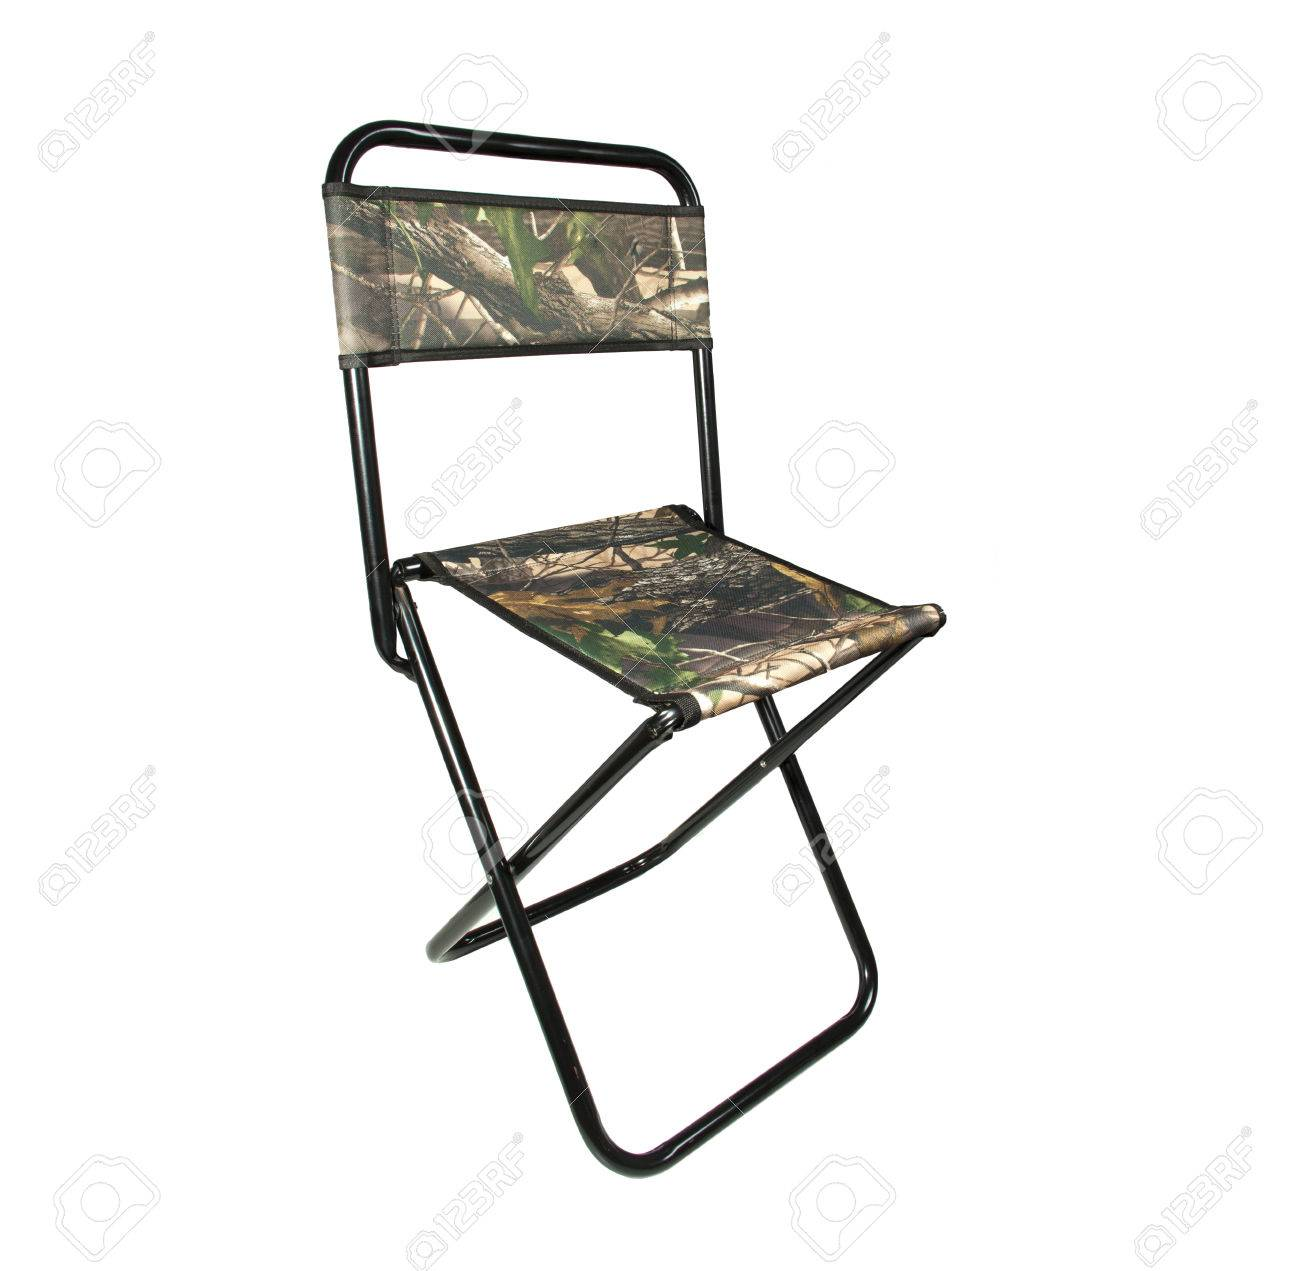 Phenomenal Camouflage Metal Folding Chair For Fishing And Recreation On Unemploymentrelief Wooden Chair Designs For Living Room Unemploymentrelieforg